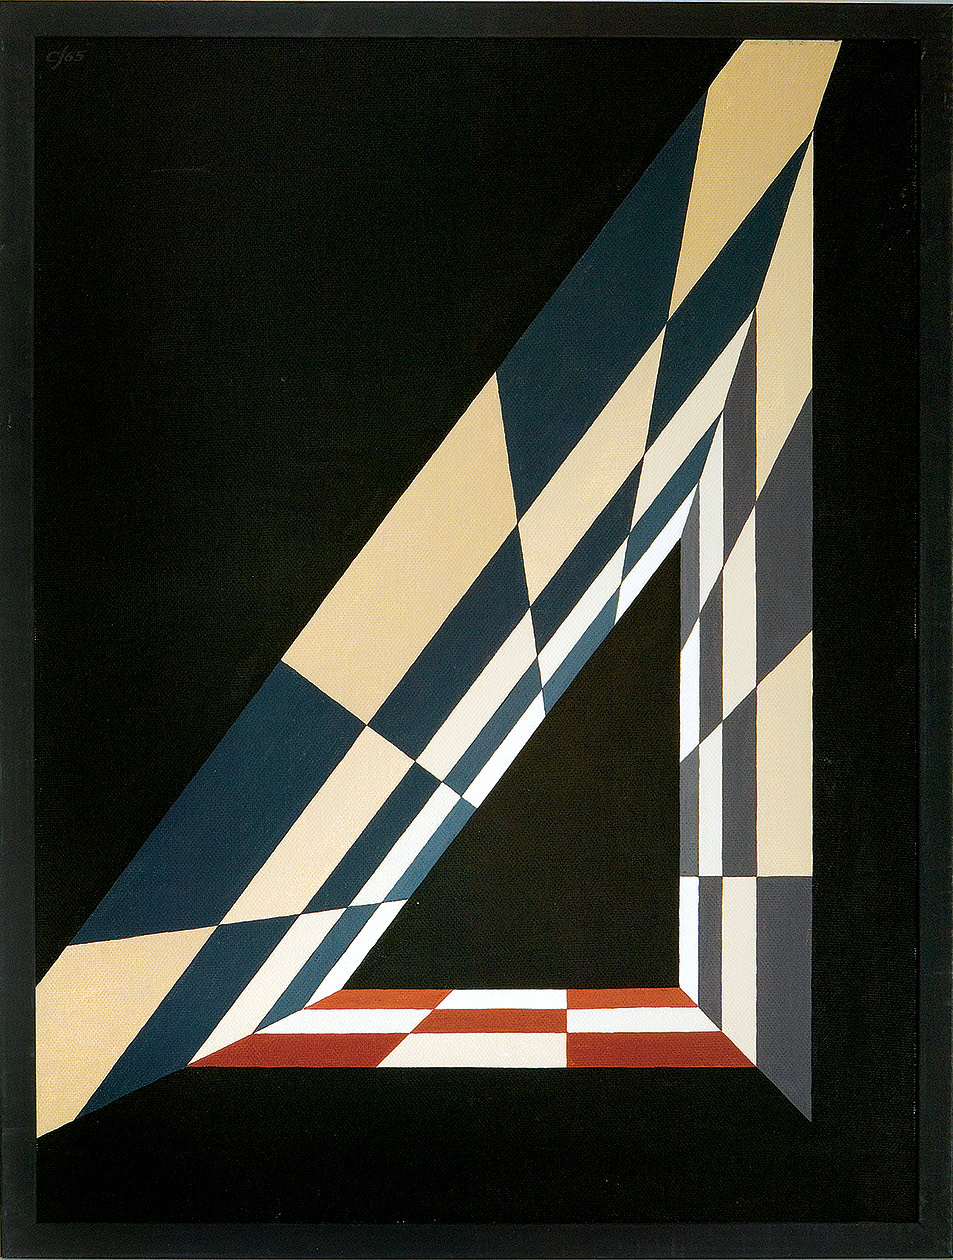 'Squares of a 3-4-5 triangle', oil on canvas, 1965 by Crockett Johnson